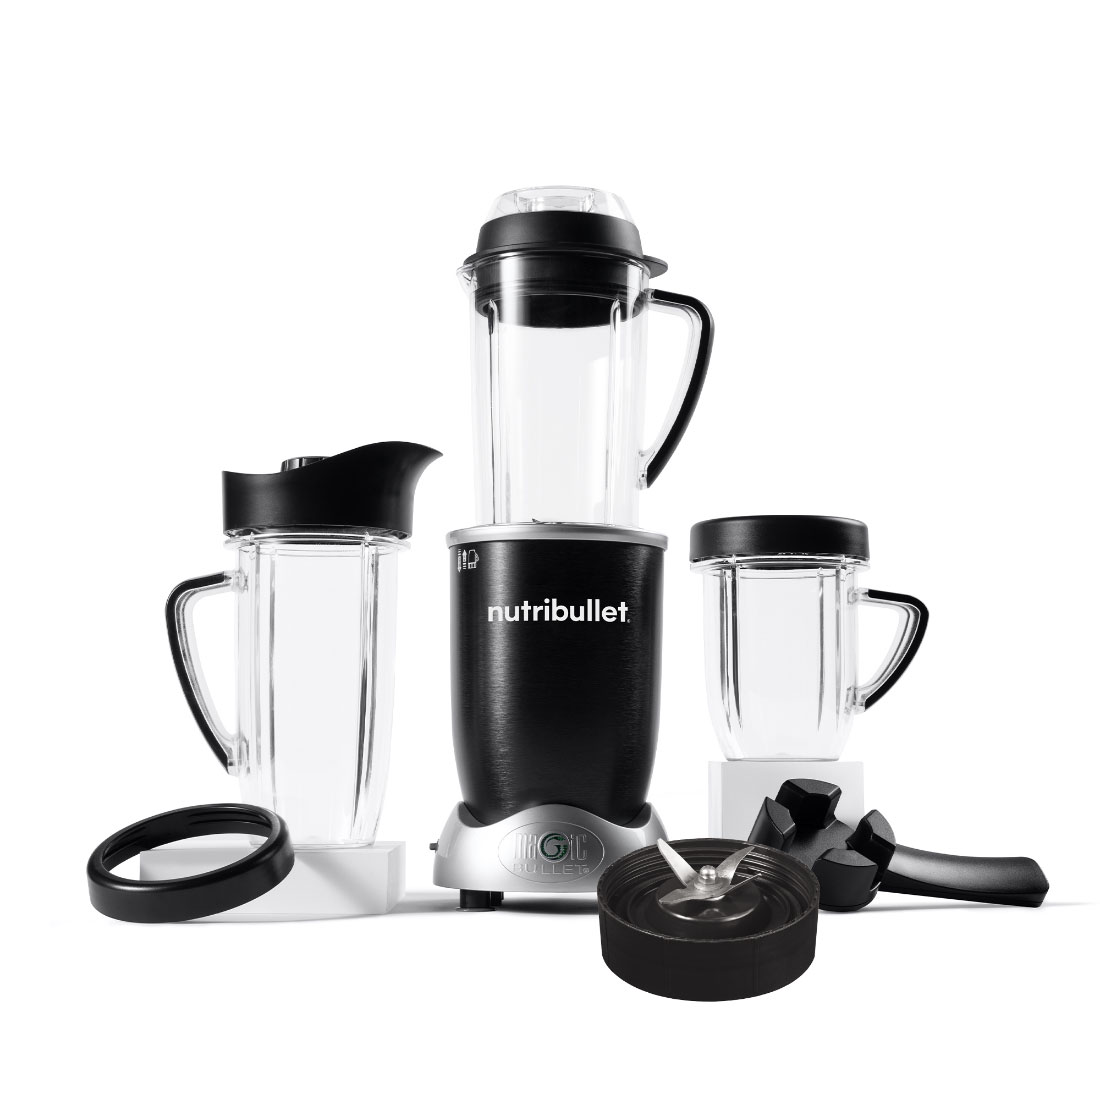 An image of NutriBullet RX